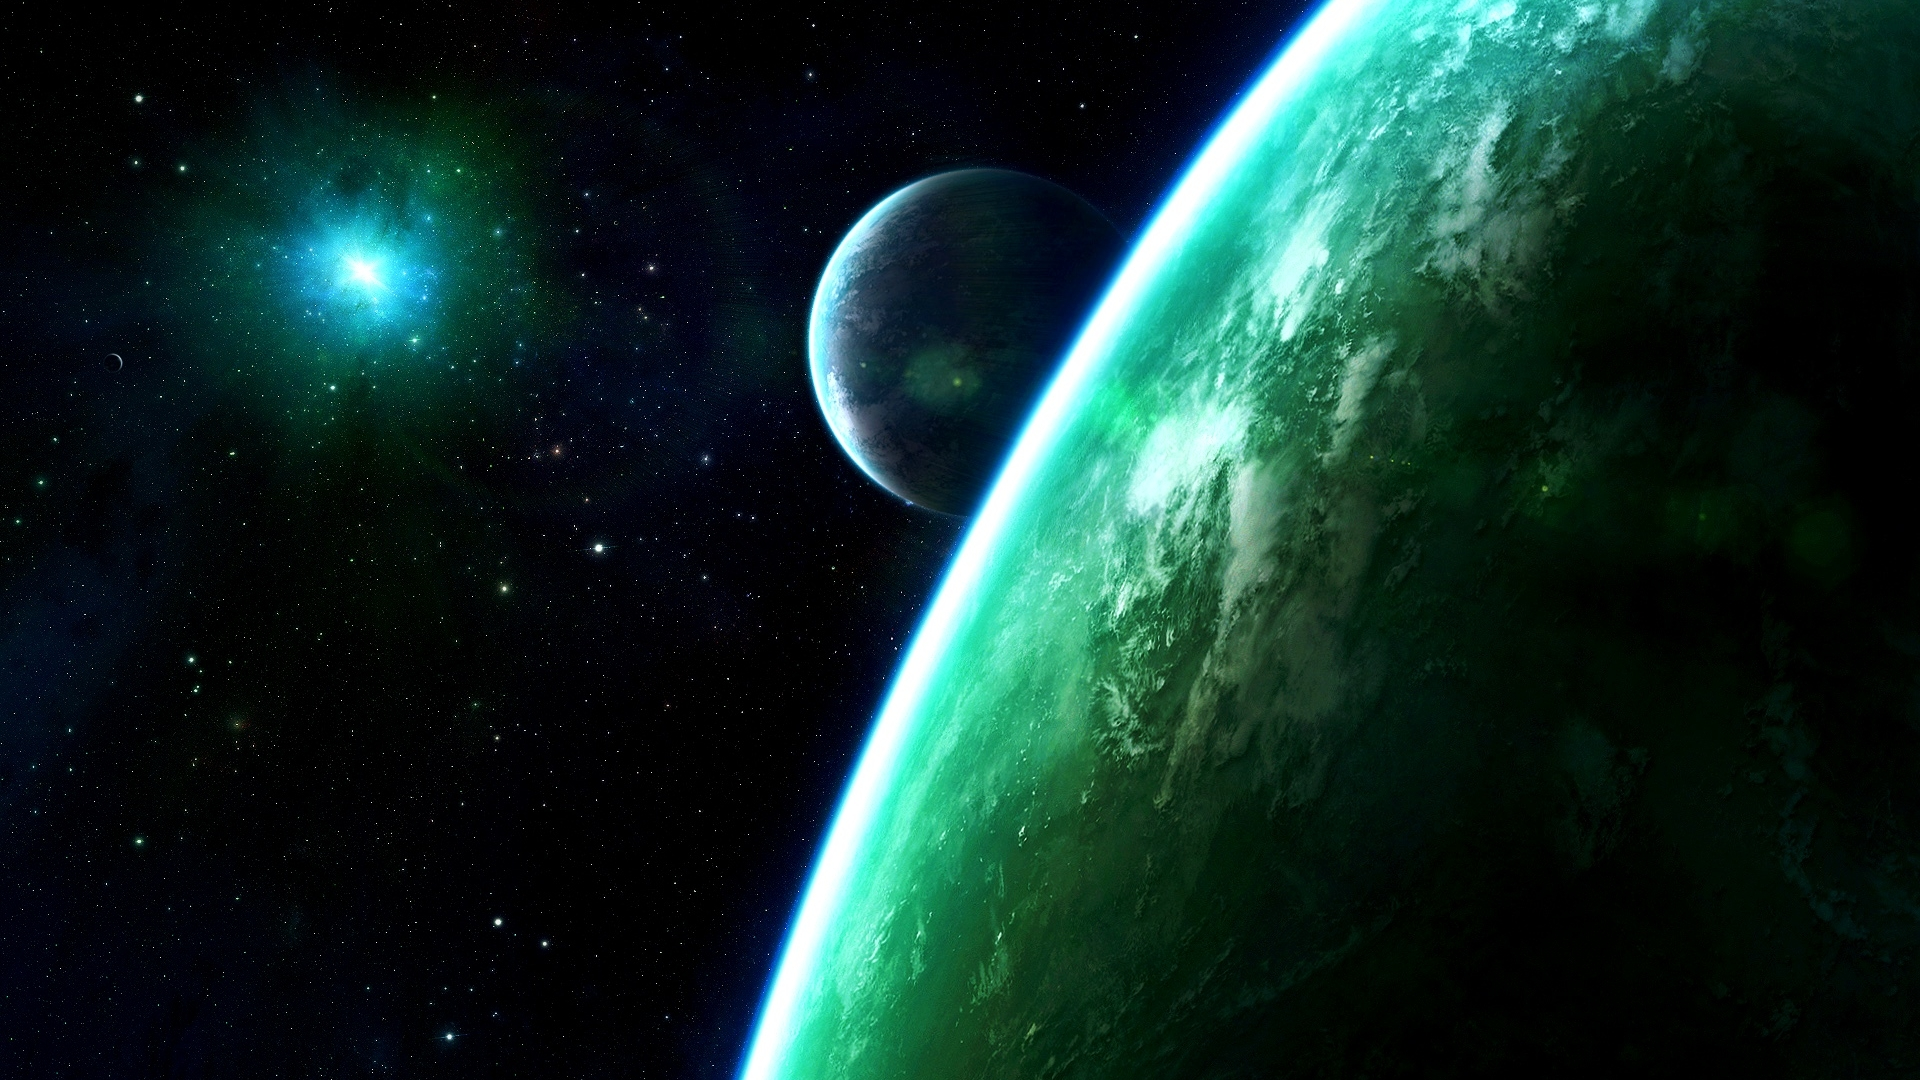 sci fi planets wallpaper background 1920x1080